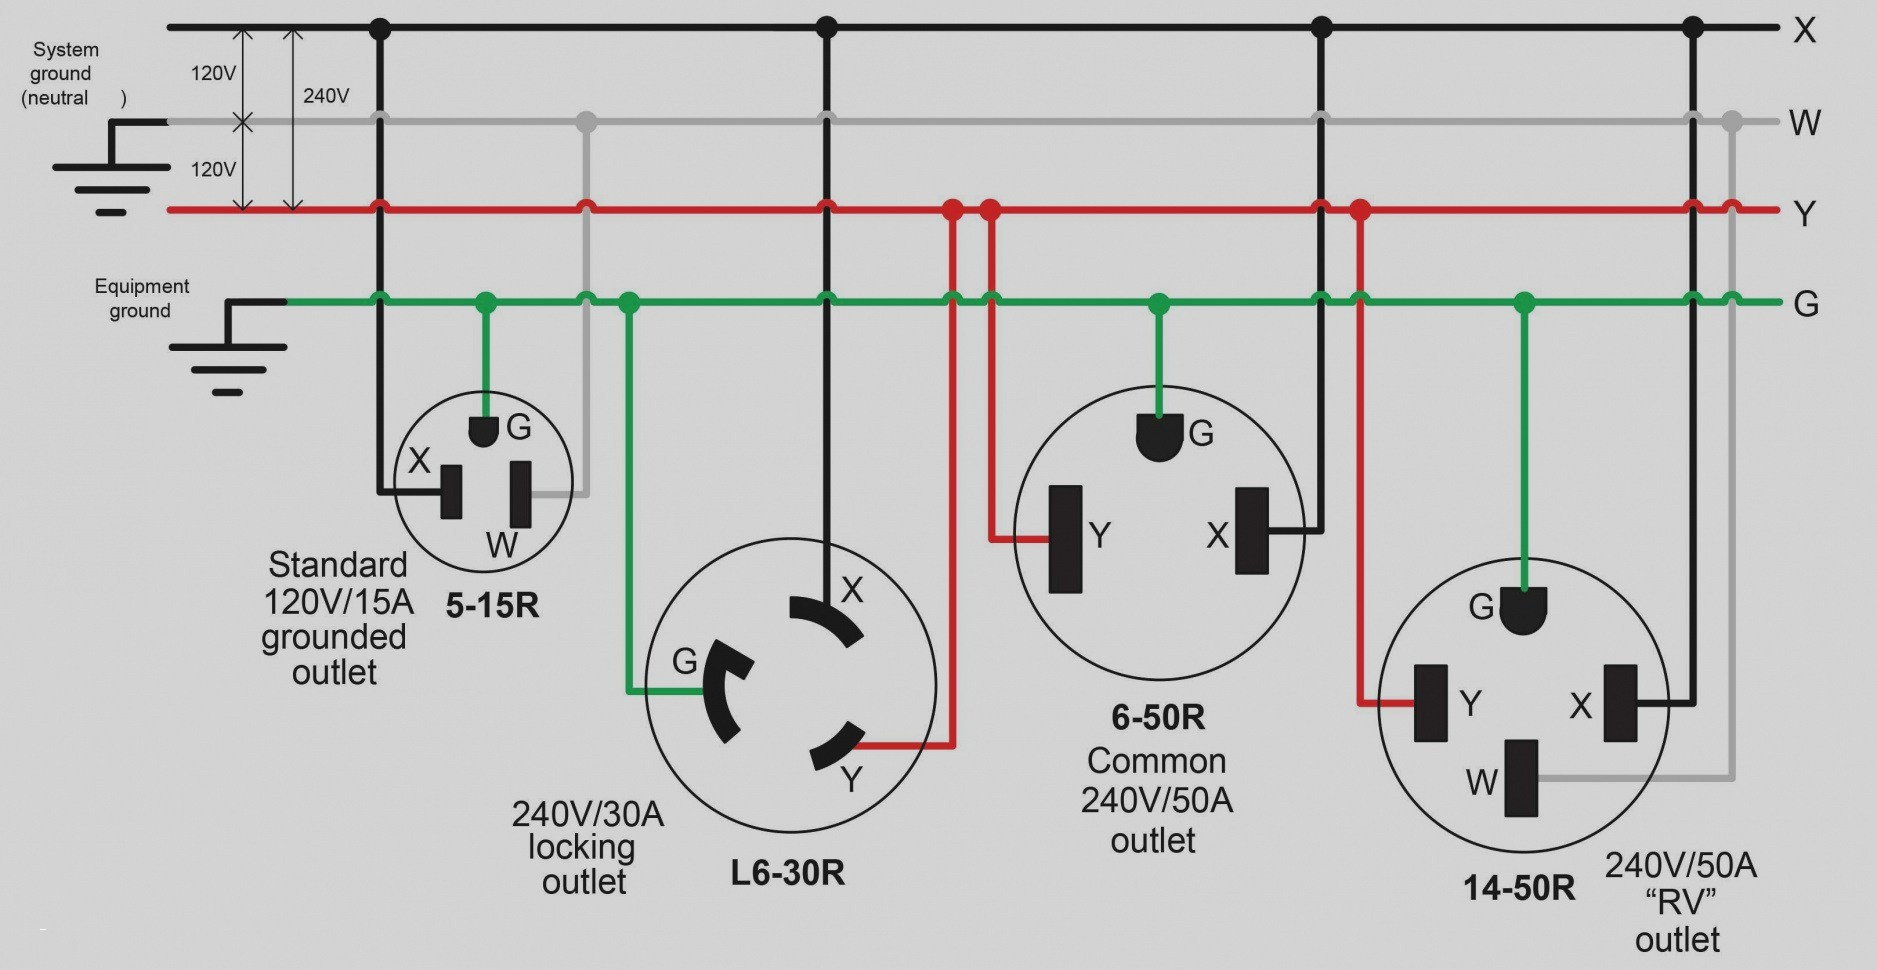 l14 30r wiring diagram Collection Ground Wire Diagram Best L14 30 Wiring Diagram Download 1 DOWNLOAD Wiring Diagram Sheets Detail Name l14 30r